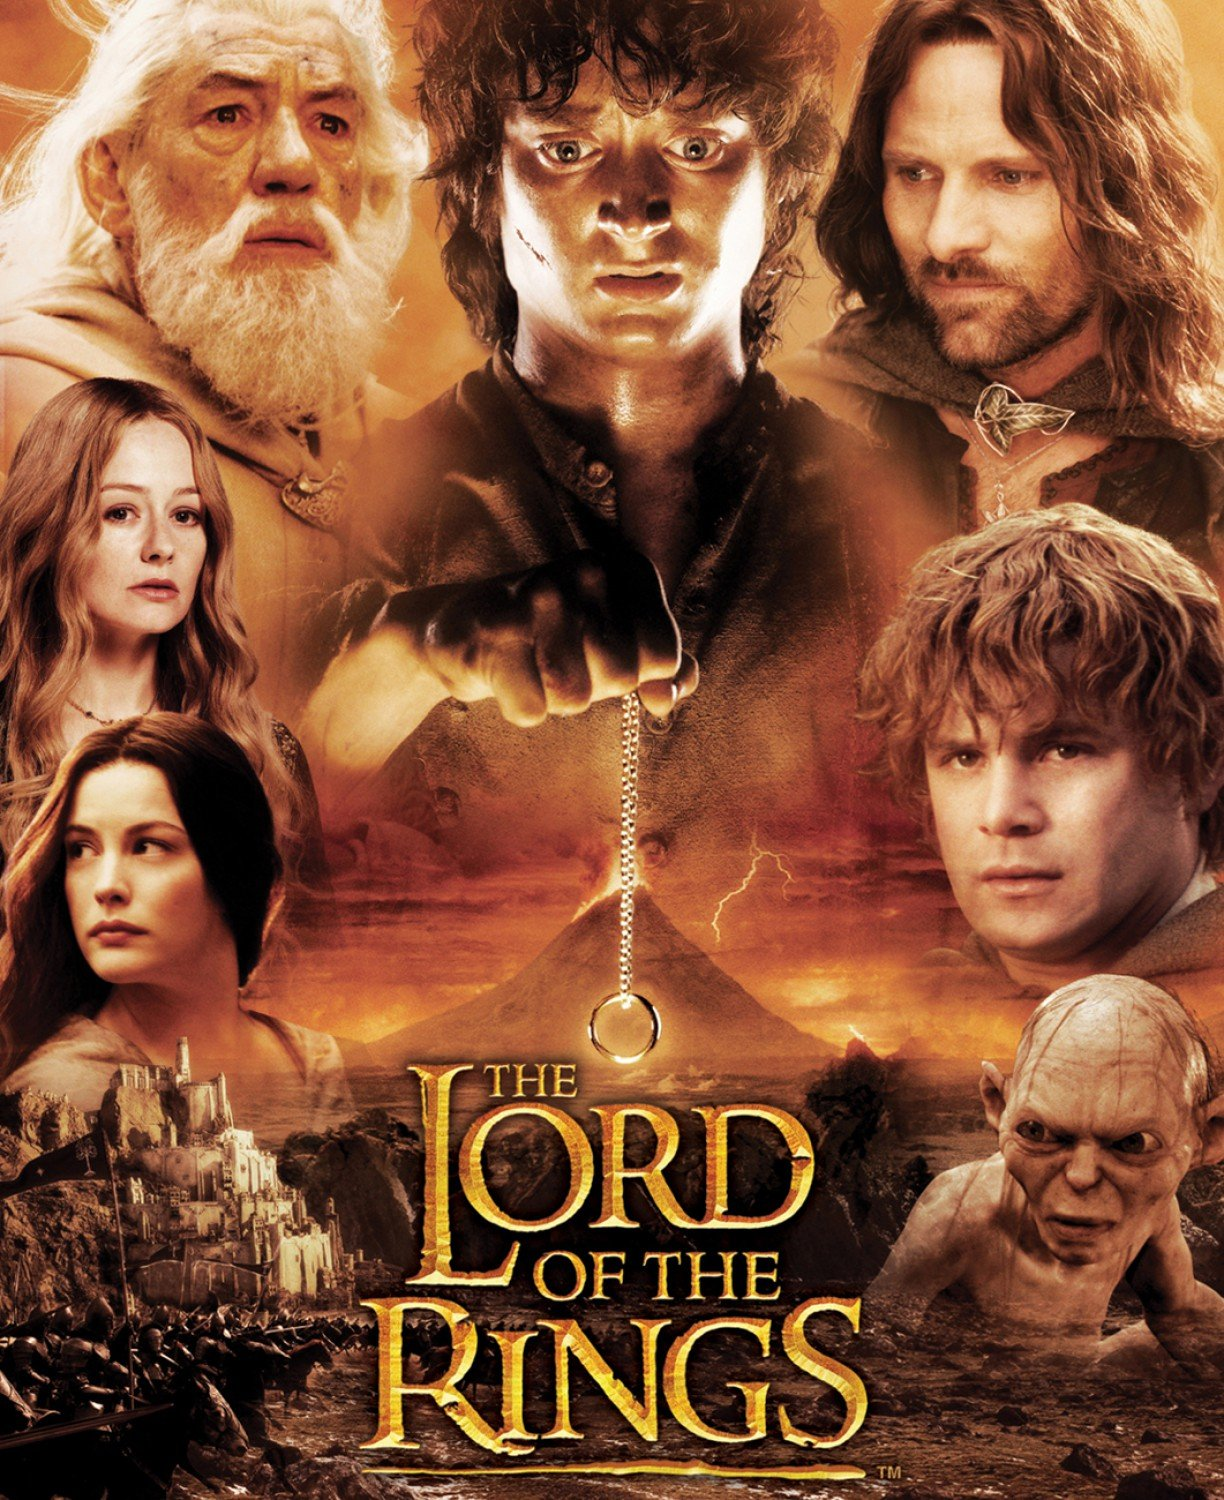 Camelot The Lord of the Rings & The Hobbit Digital 242000012JP 1 Lord of the Ring Character Panel $17.99/yd